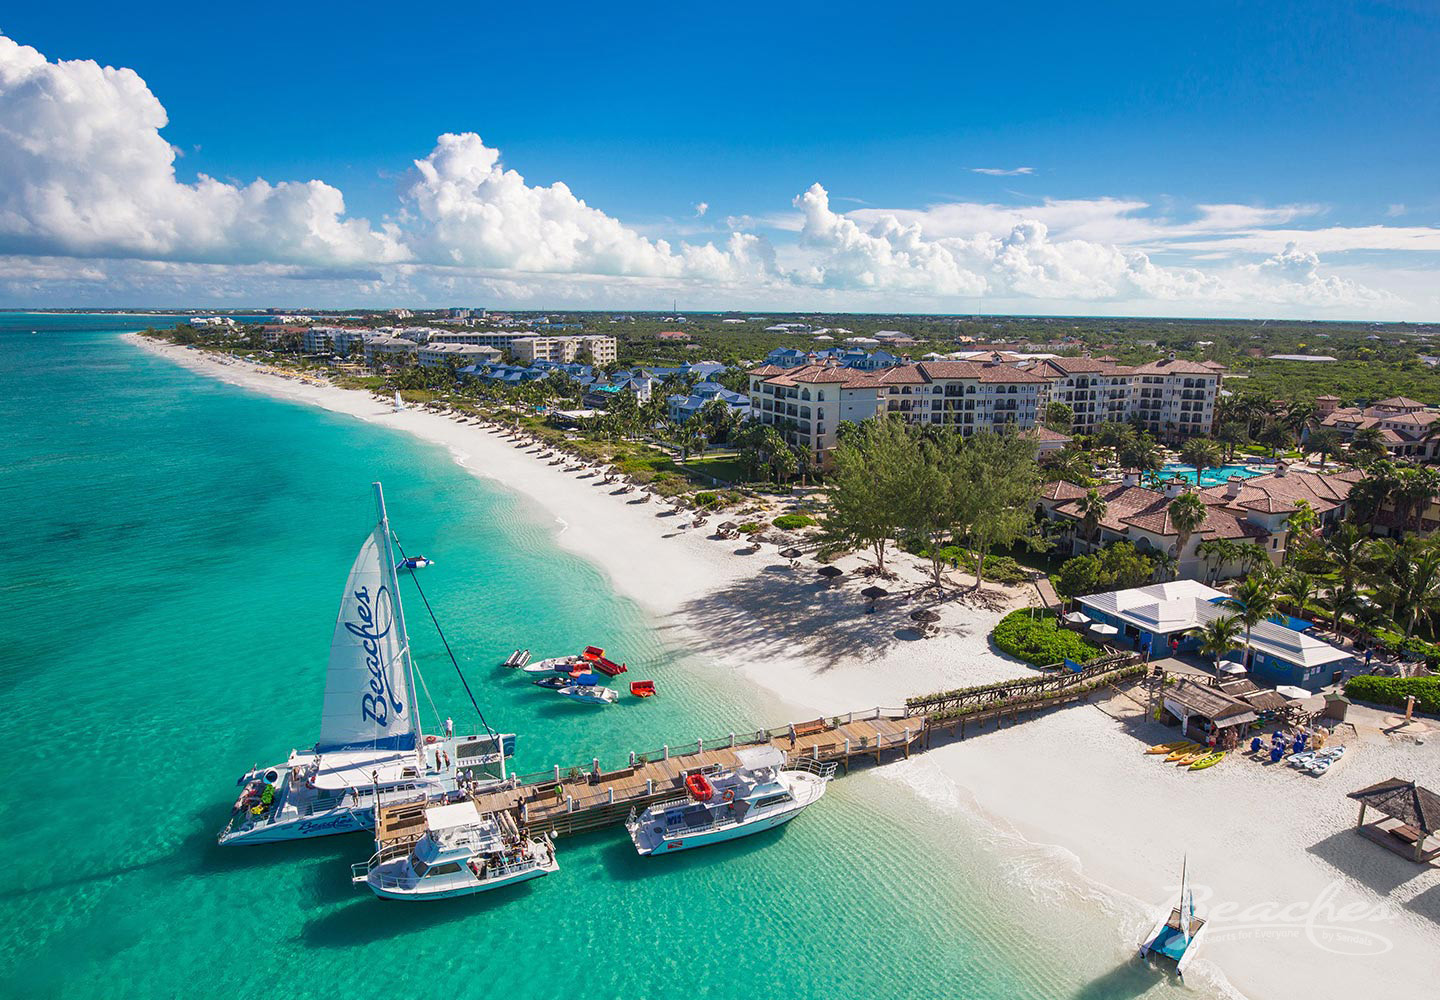 Travel Agency All-Inclusive Resort Beaches Turks and Caicos 151